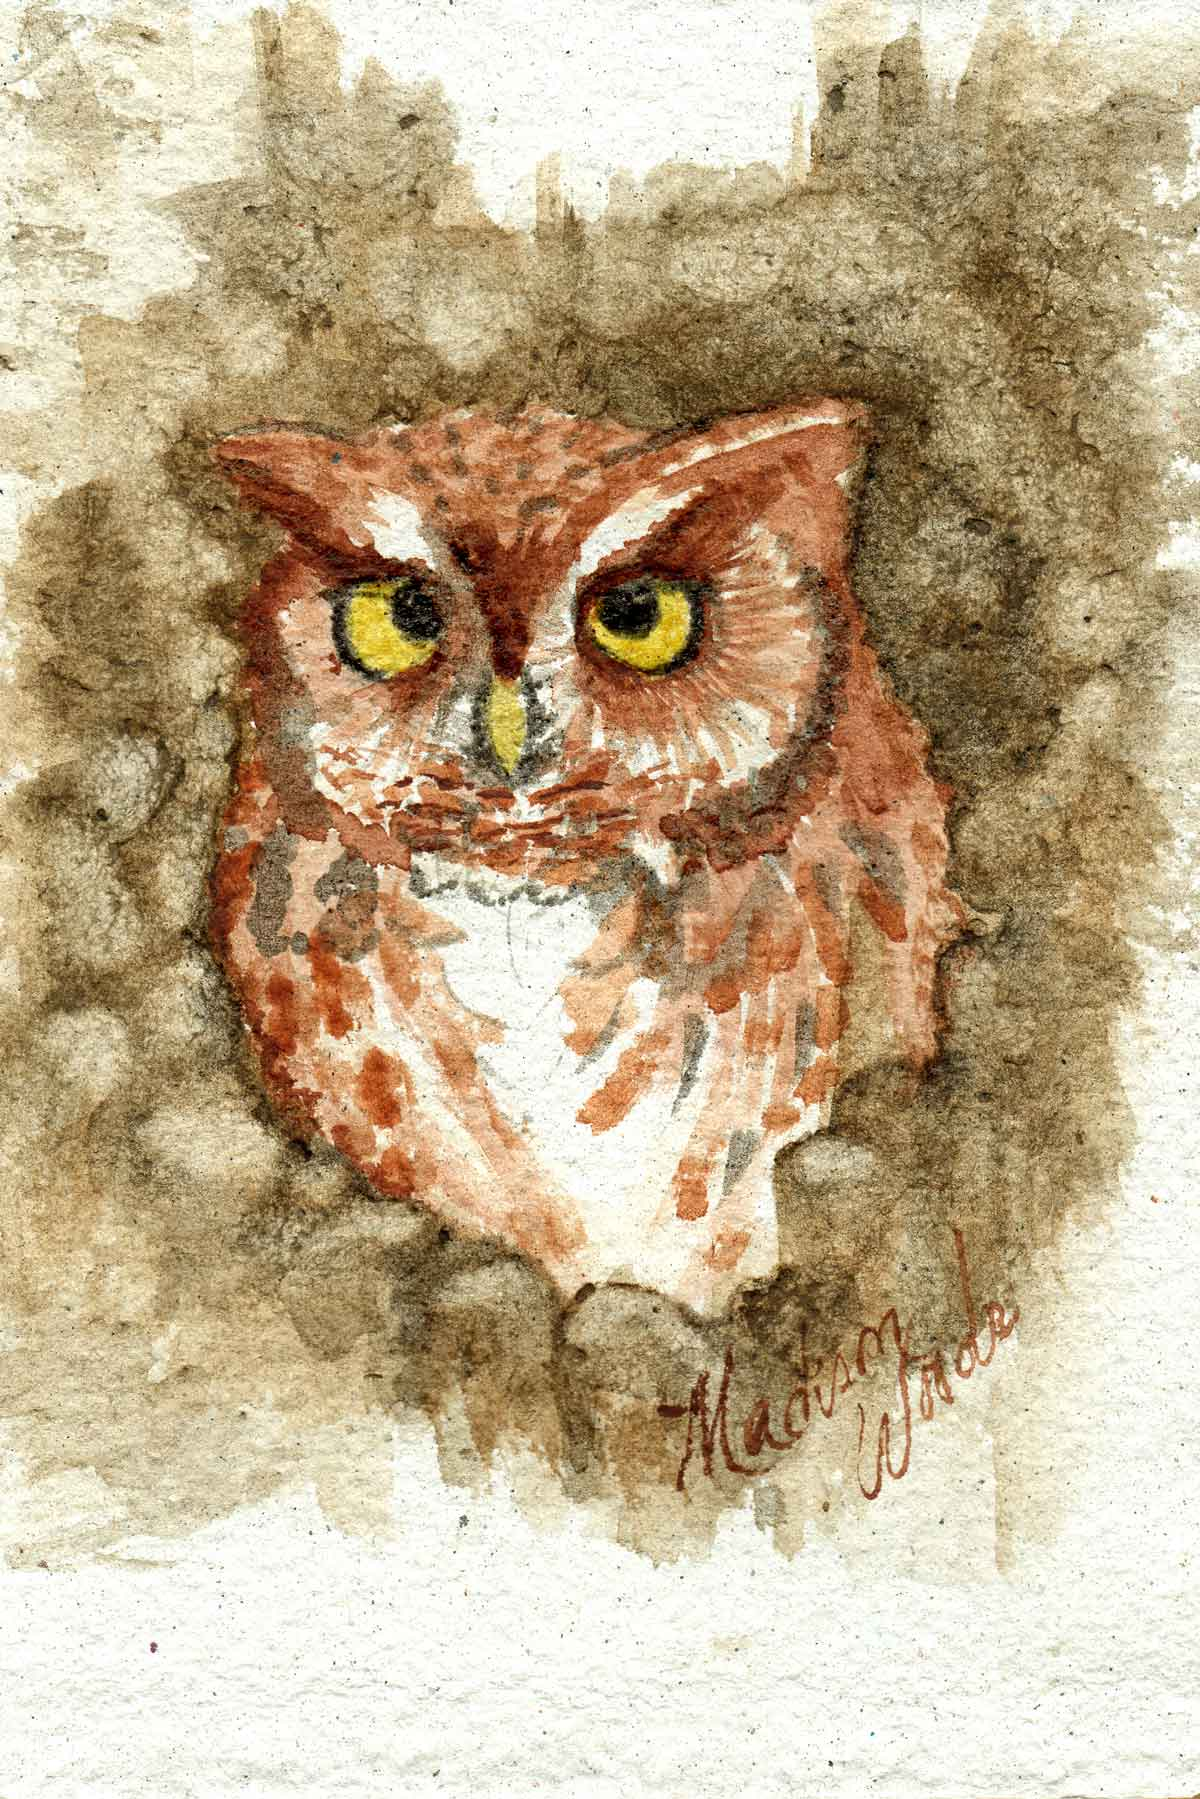 Owl No. 1 in Wild Ozark Paleo Paints.